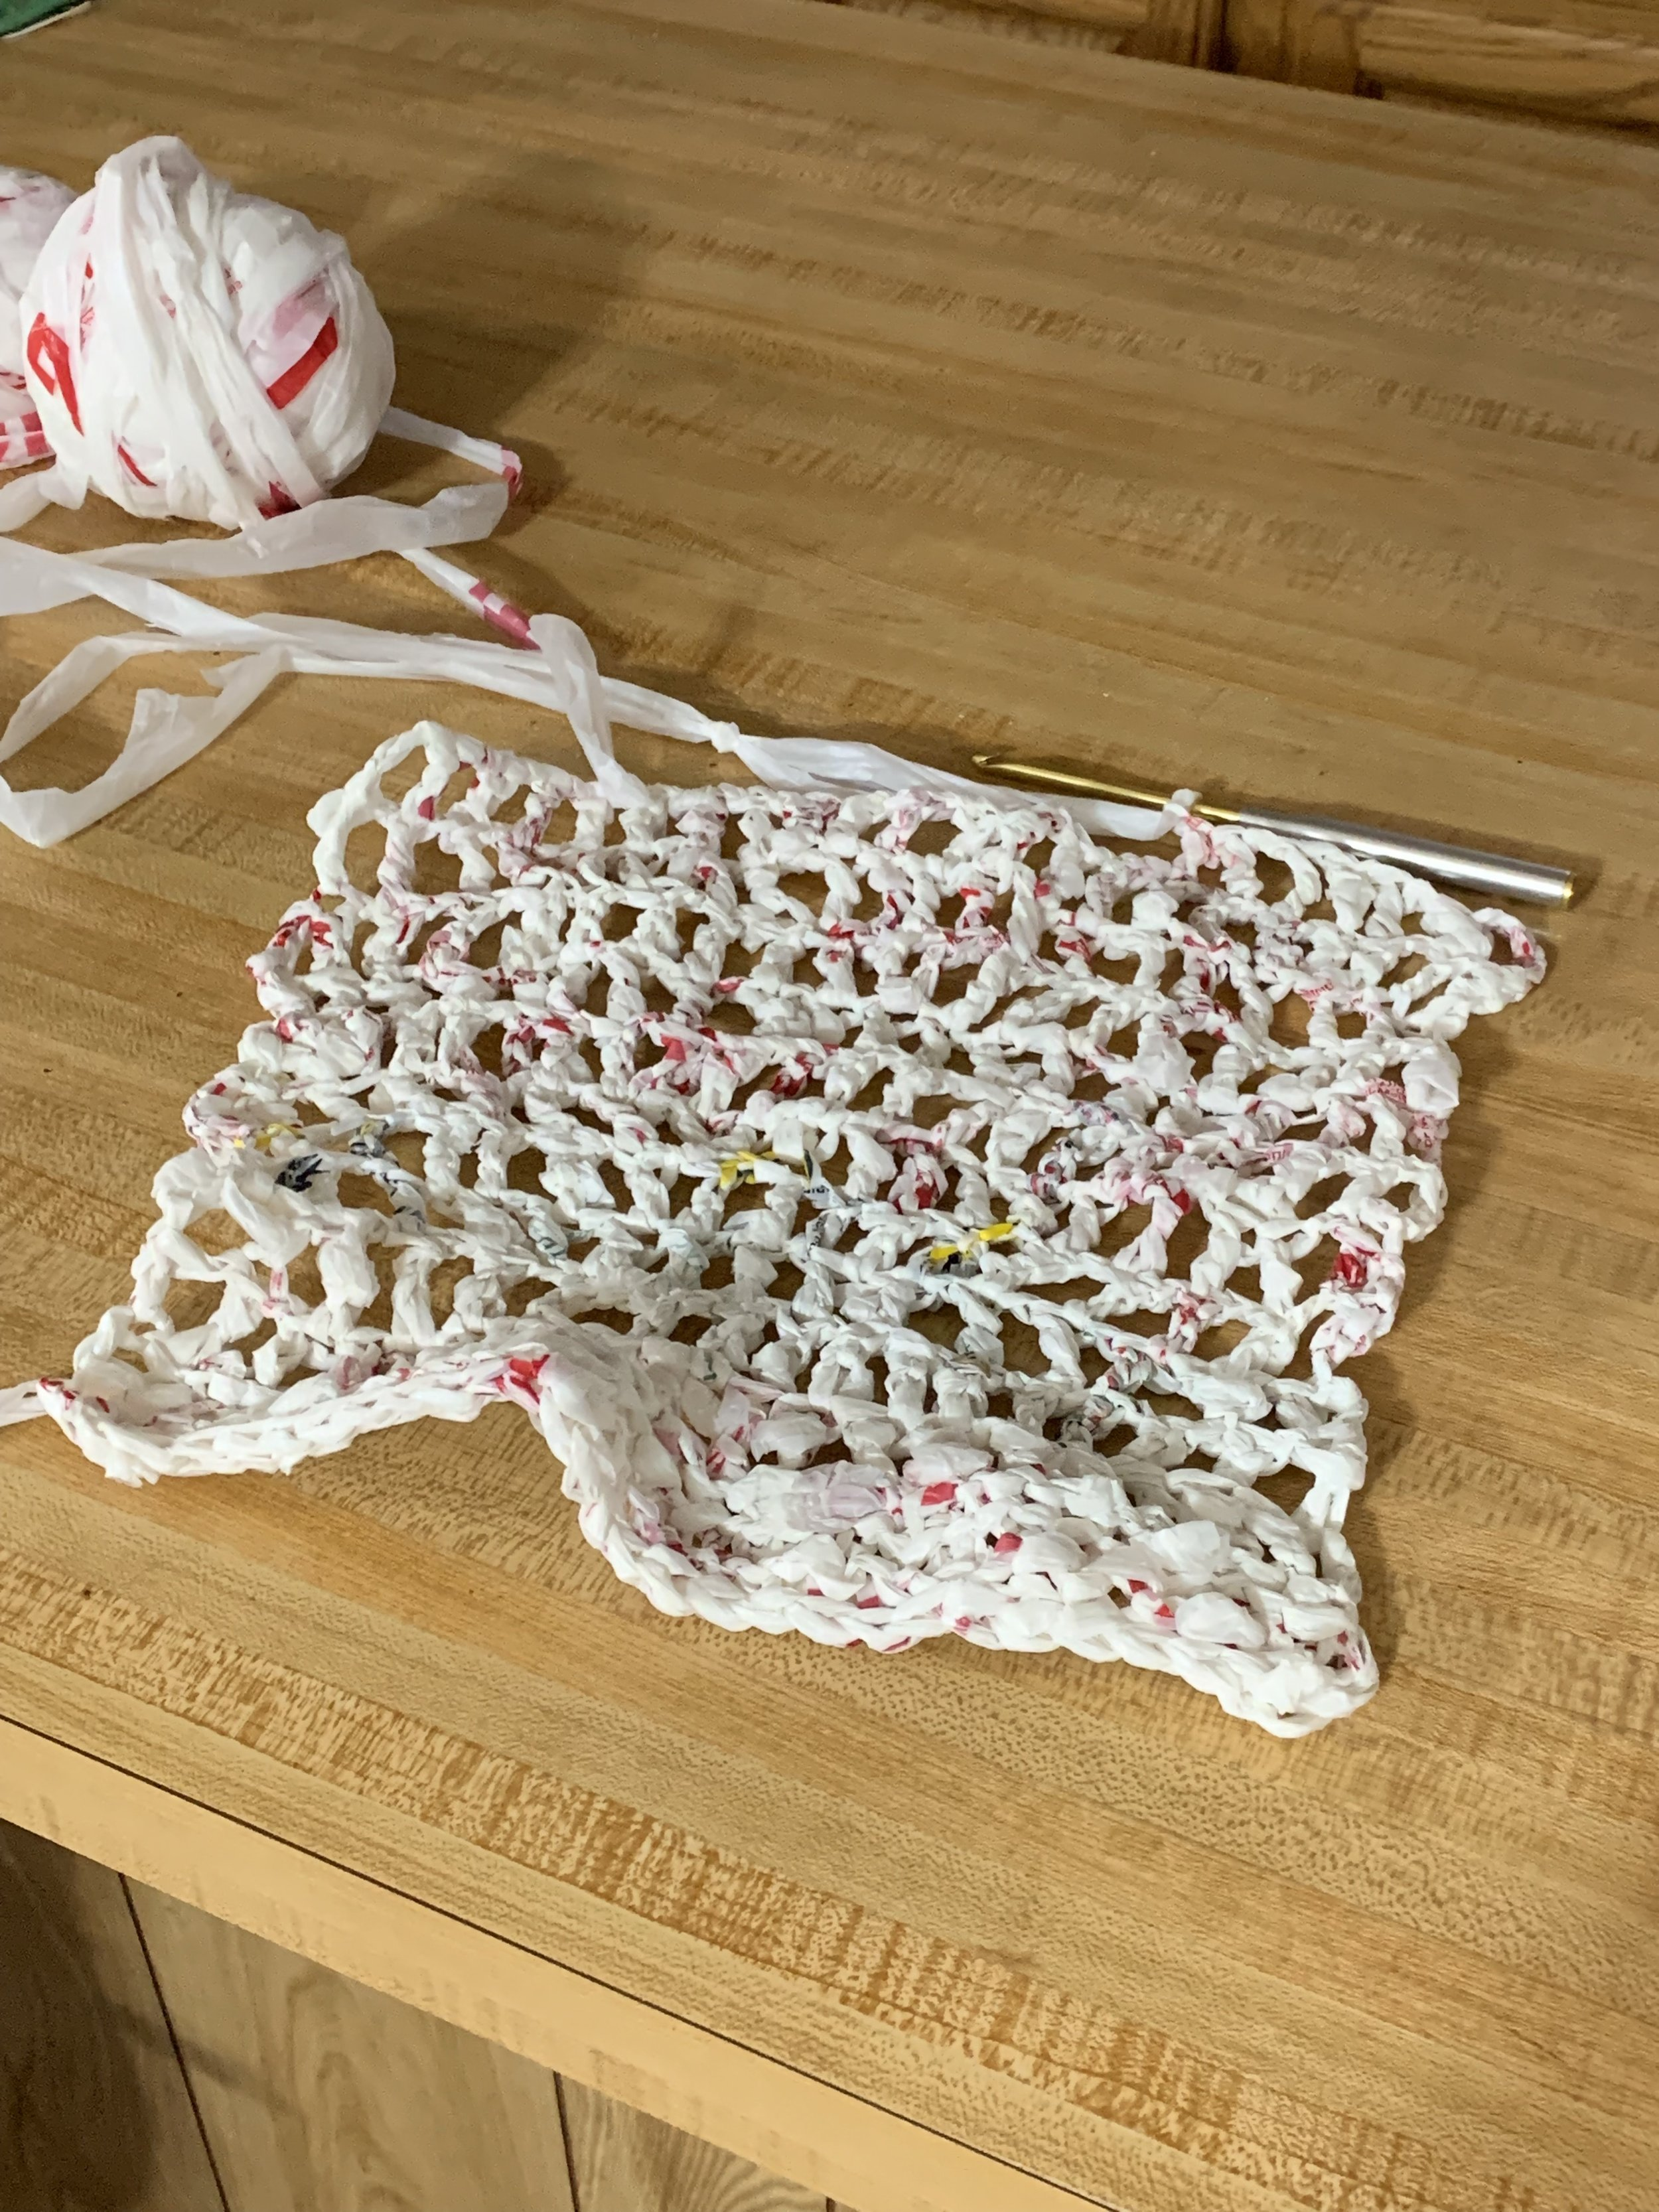 The beginnings of my first tote bag made of plarn.